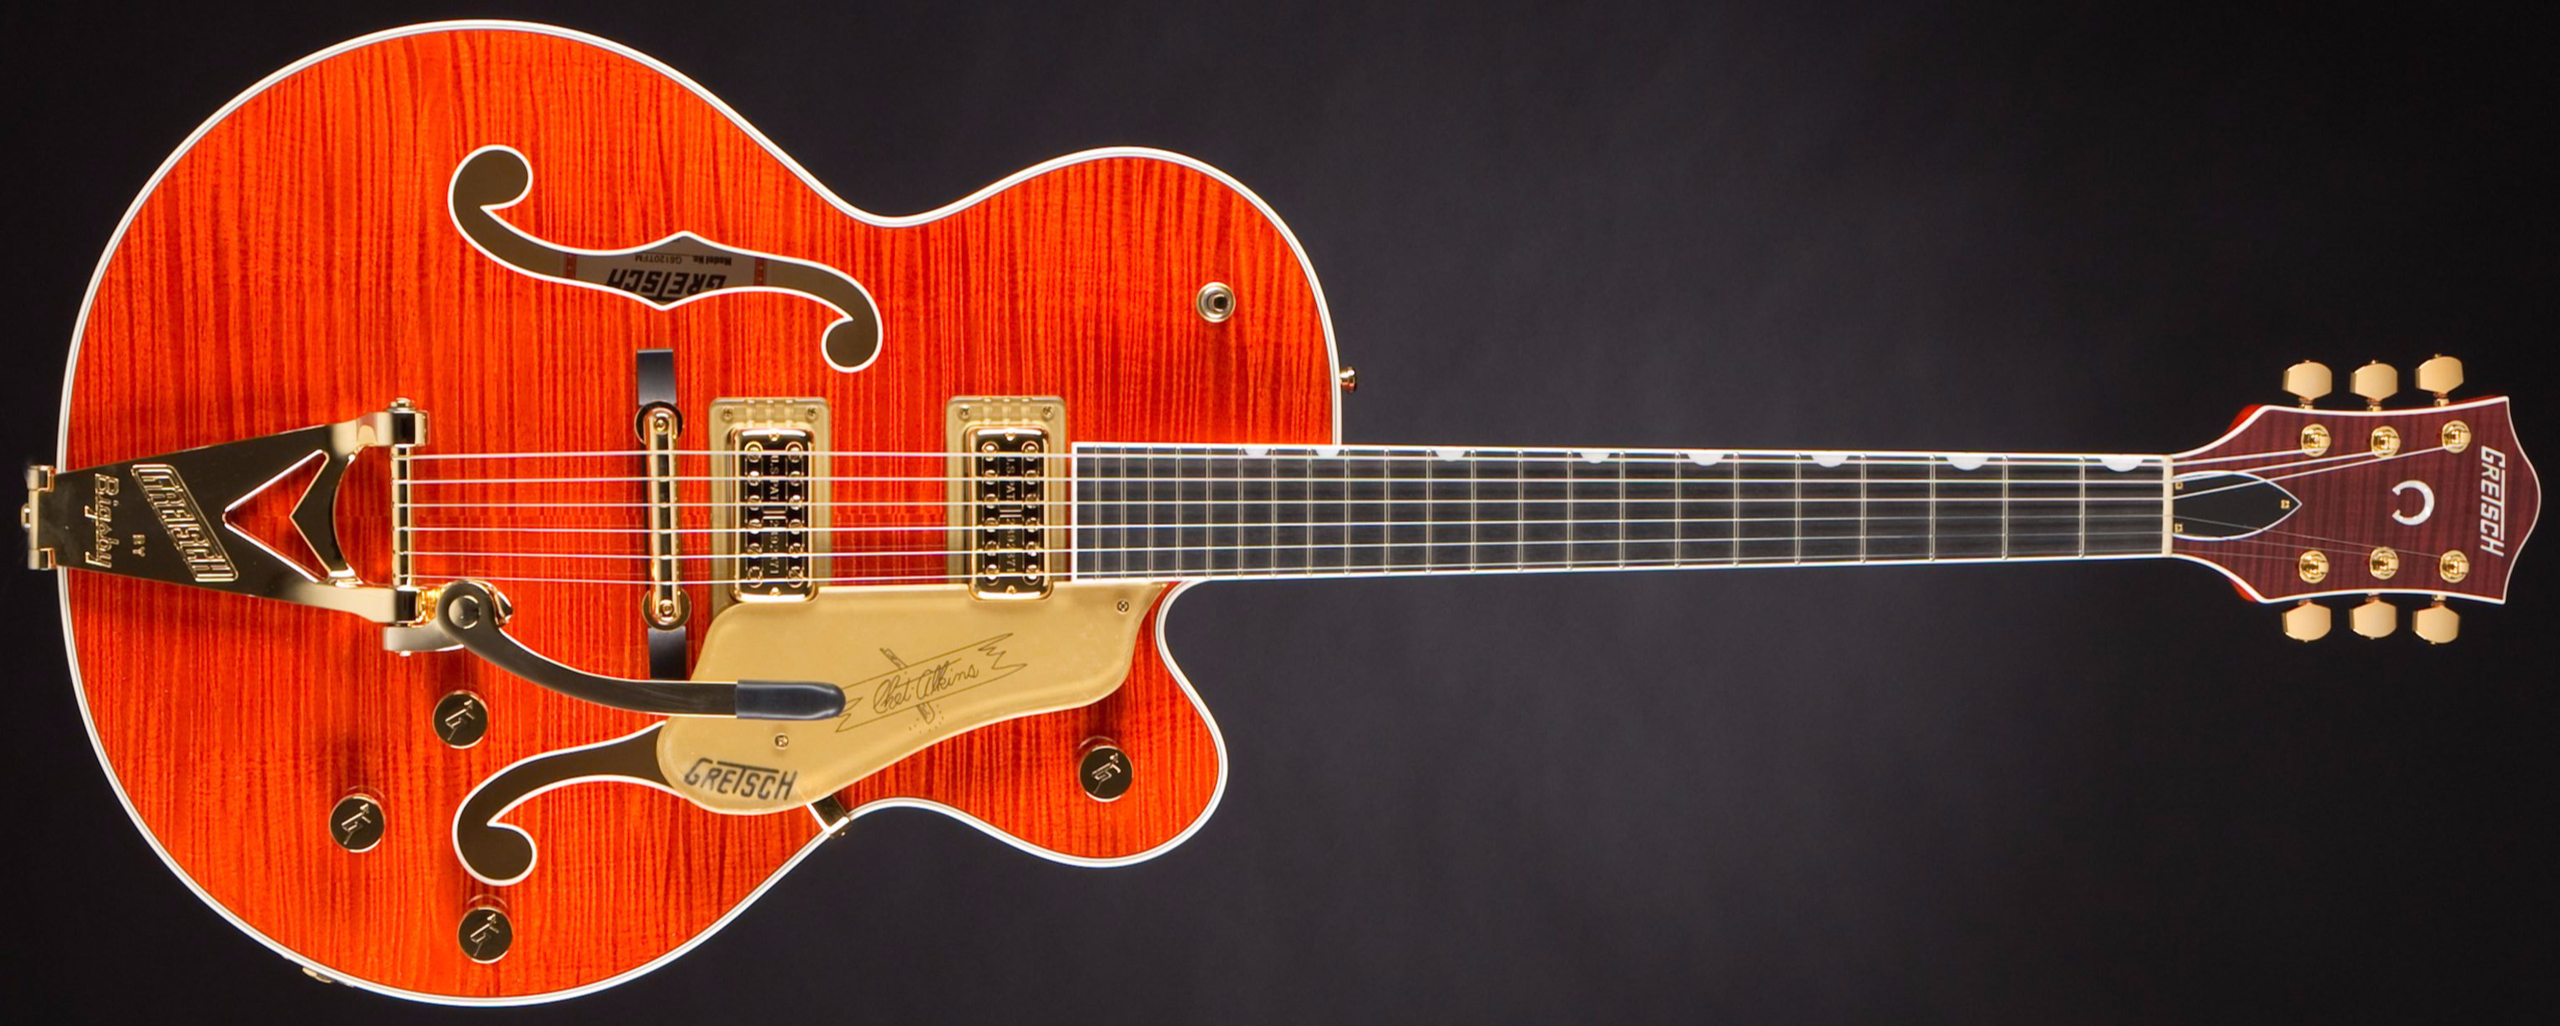 GRETSCH G6120TFM Players Edition Nashville Bigsby Flame Maple Orange Stain